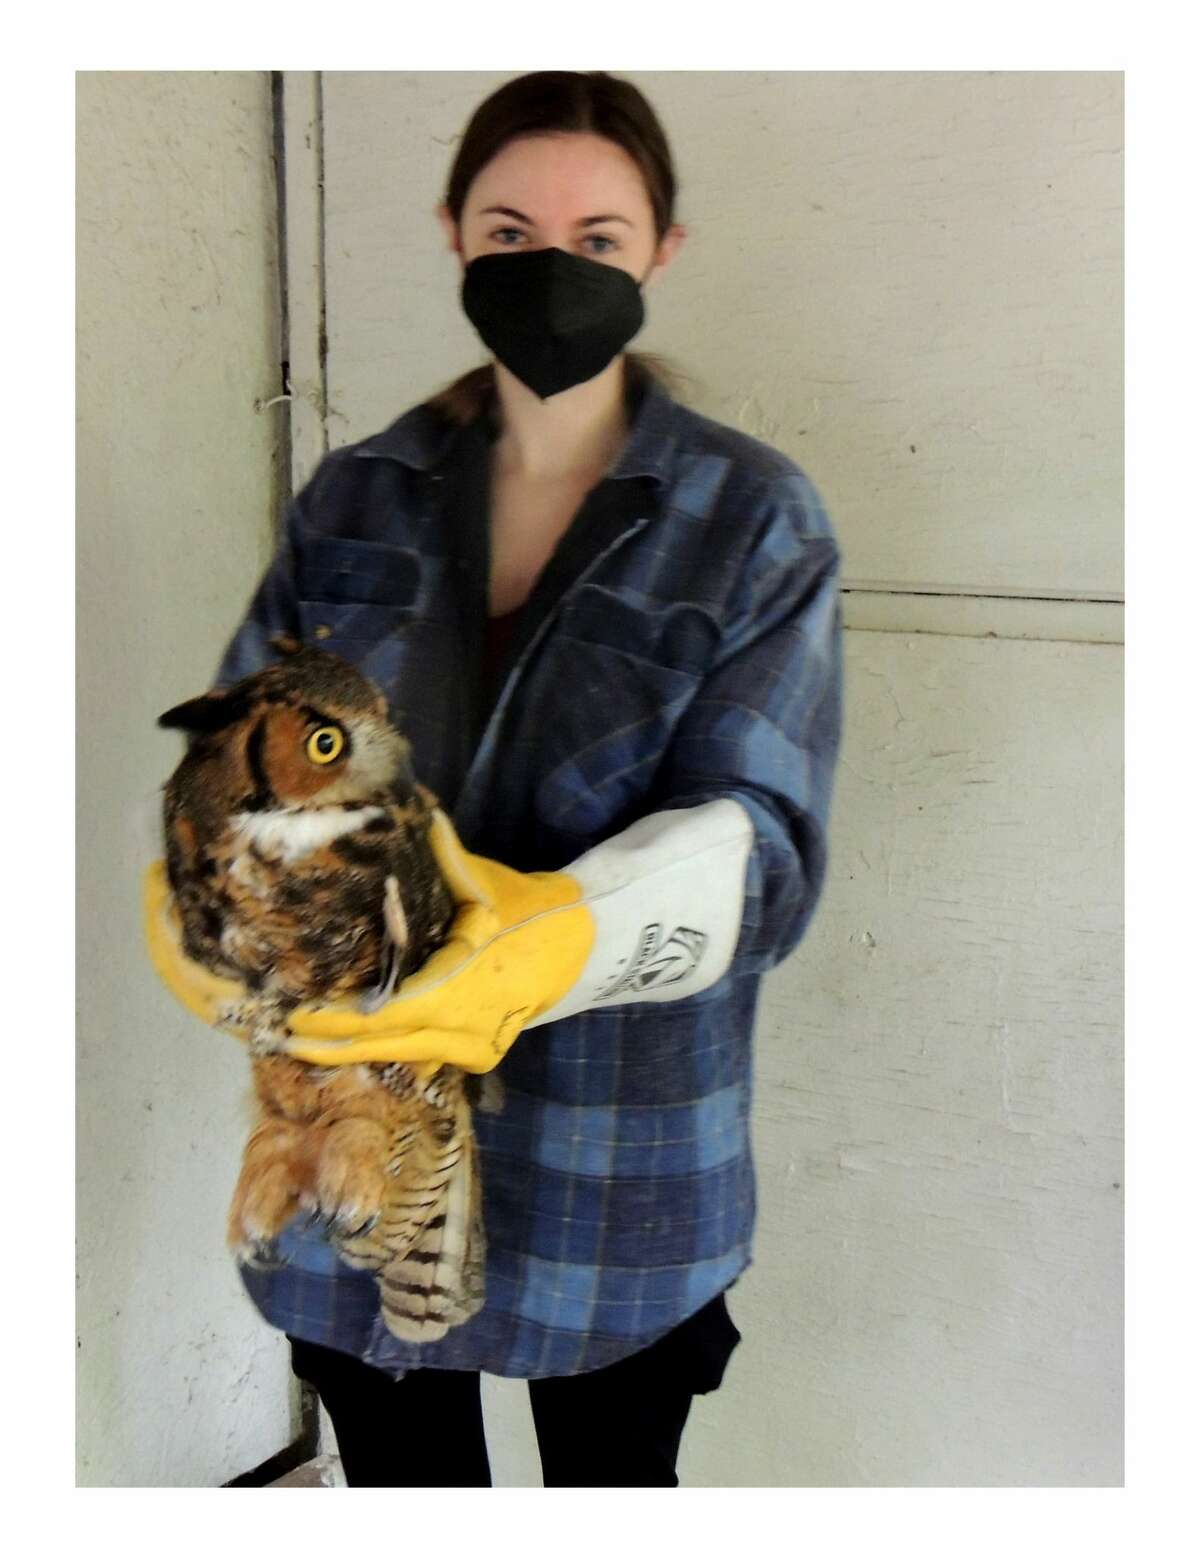 Wildlife Recovery Association intern Teresa Knapp practices how to hold the great horned owl at the association's facility in Shepherd, before it is released back into the wild.